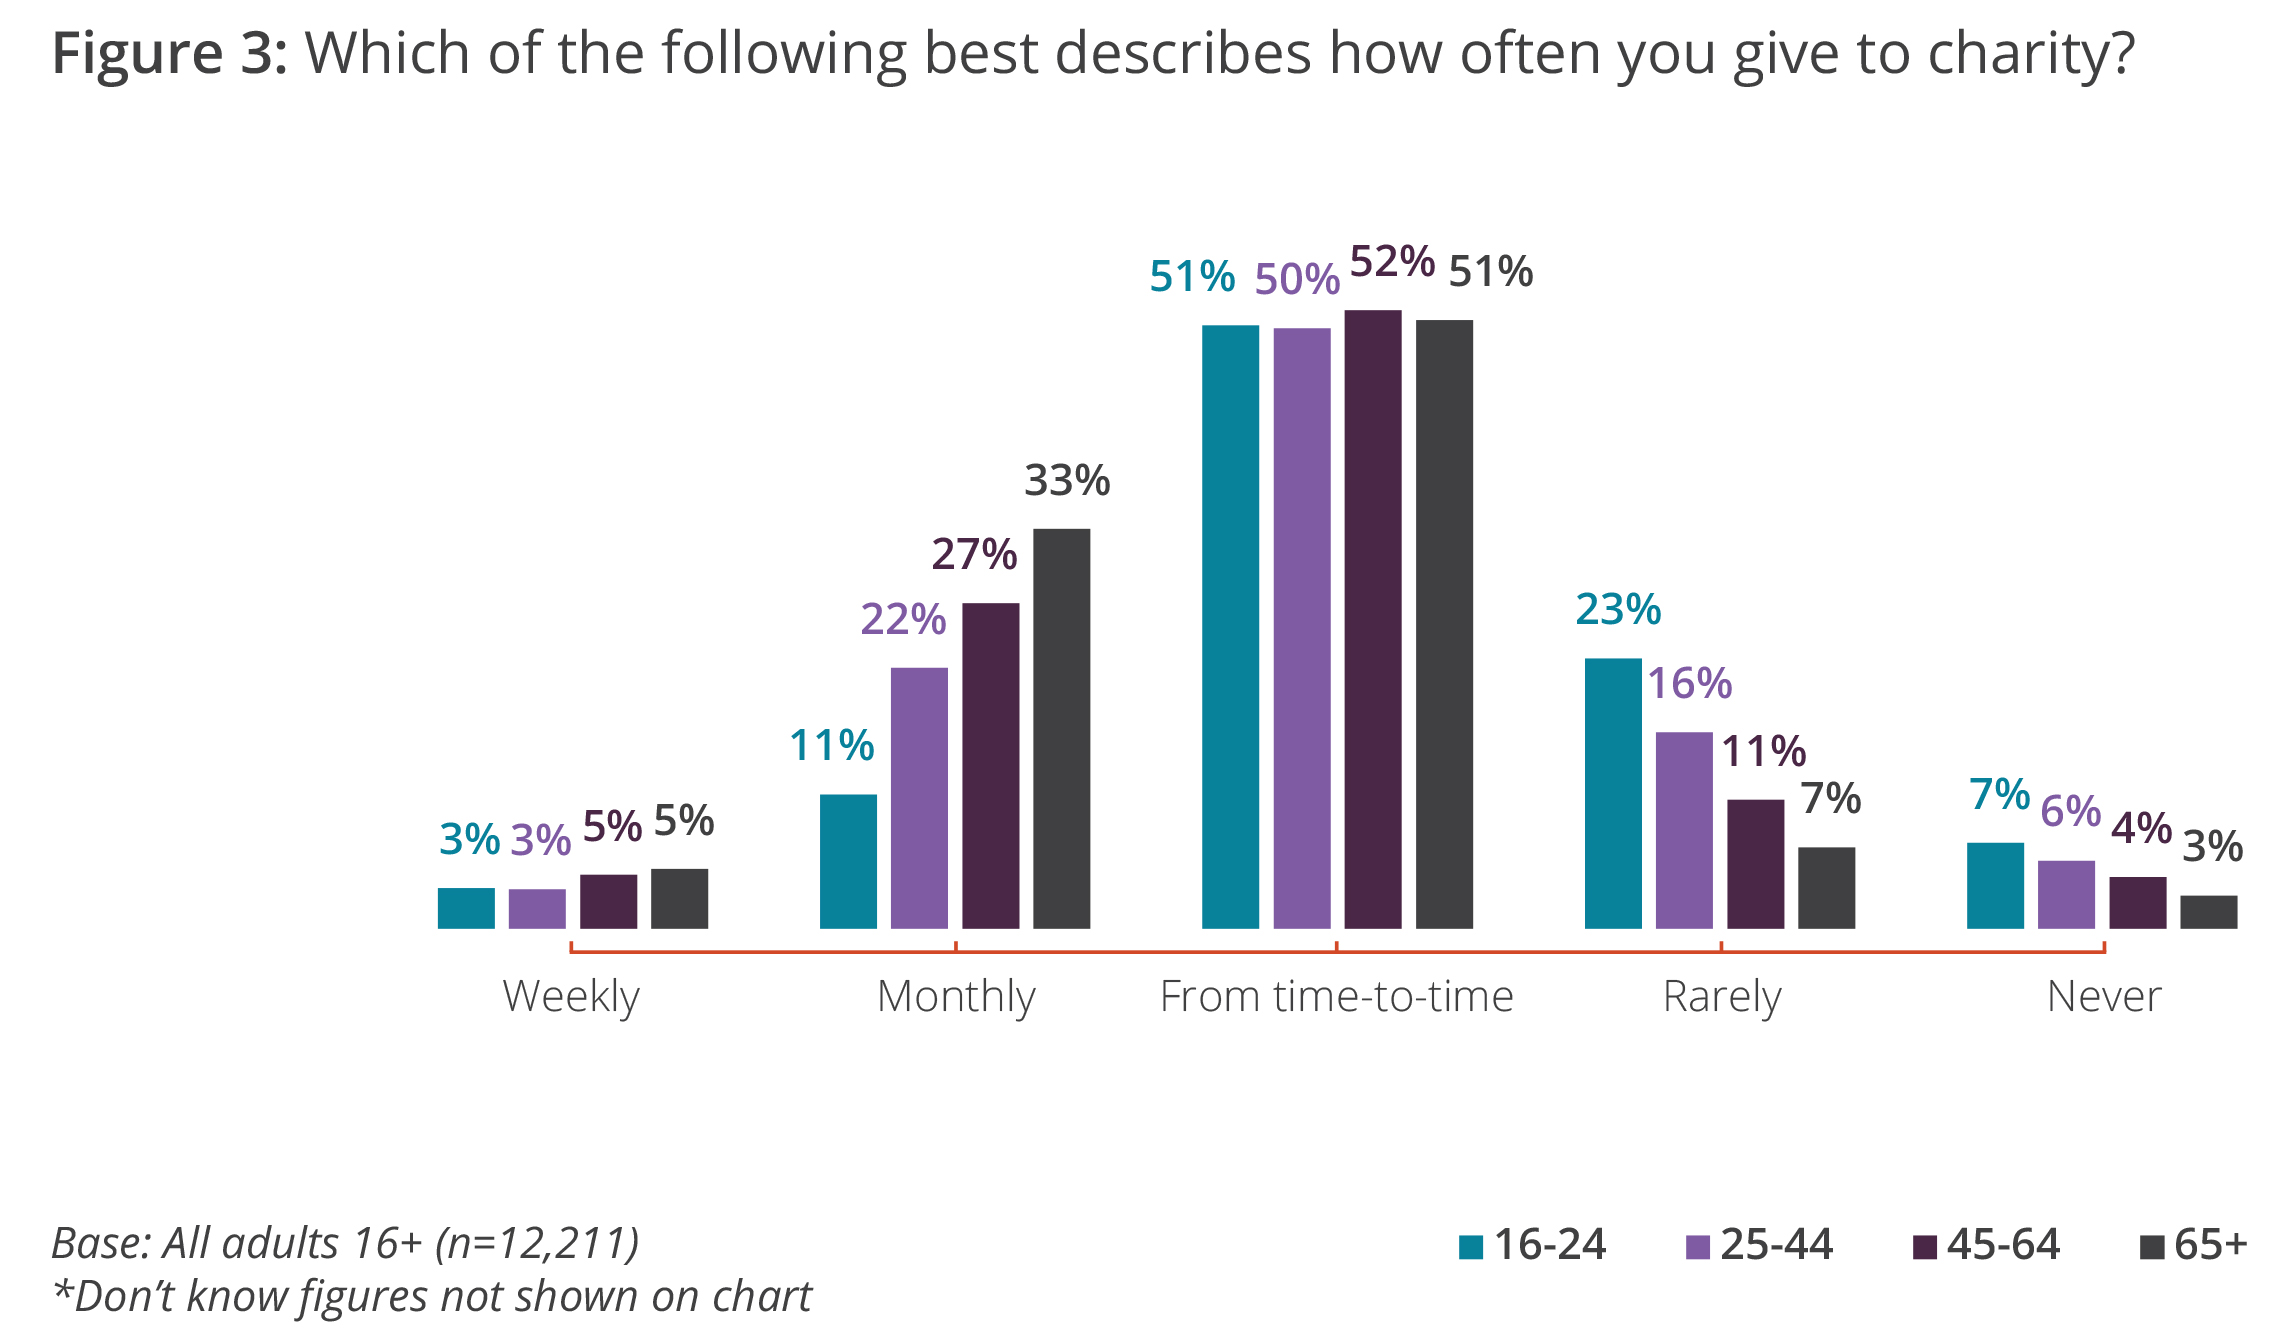 Which of the following best describes how often you give to charity?